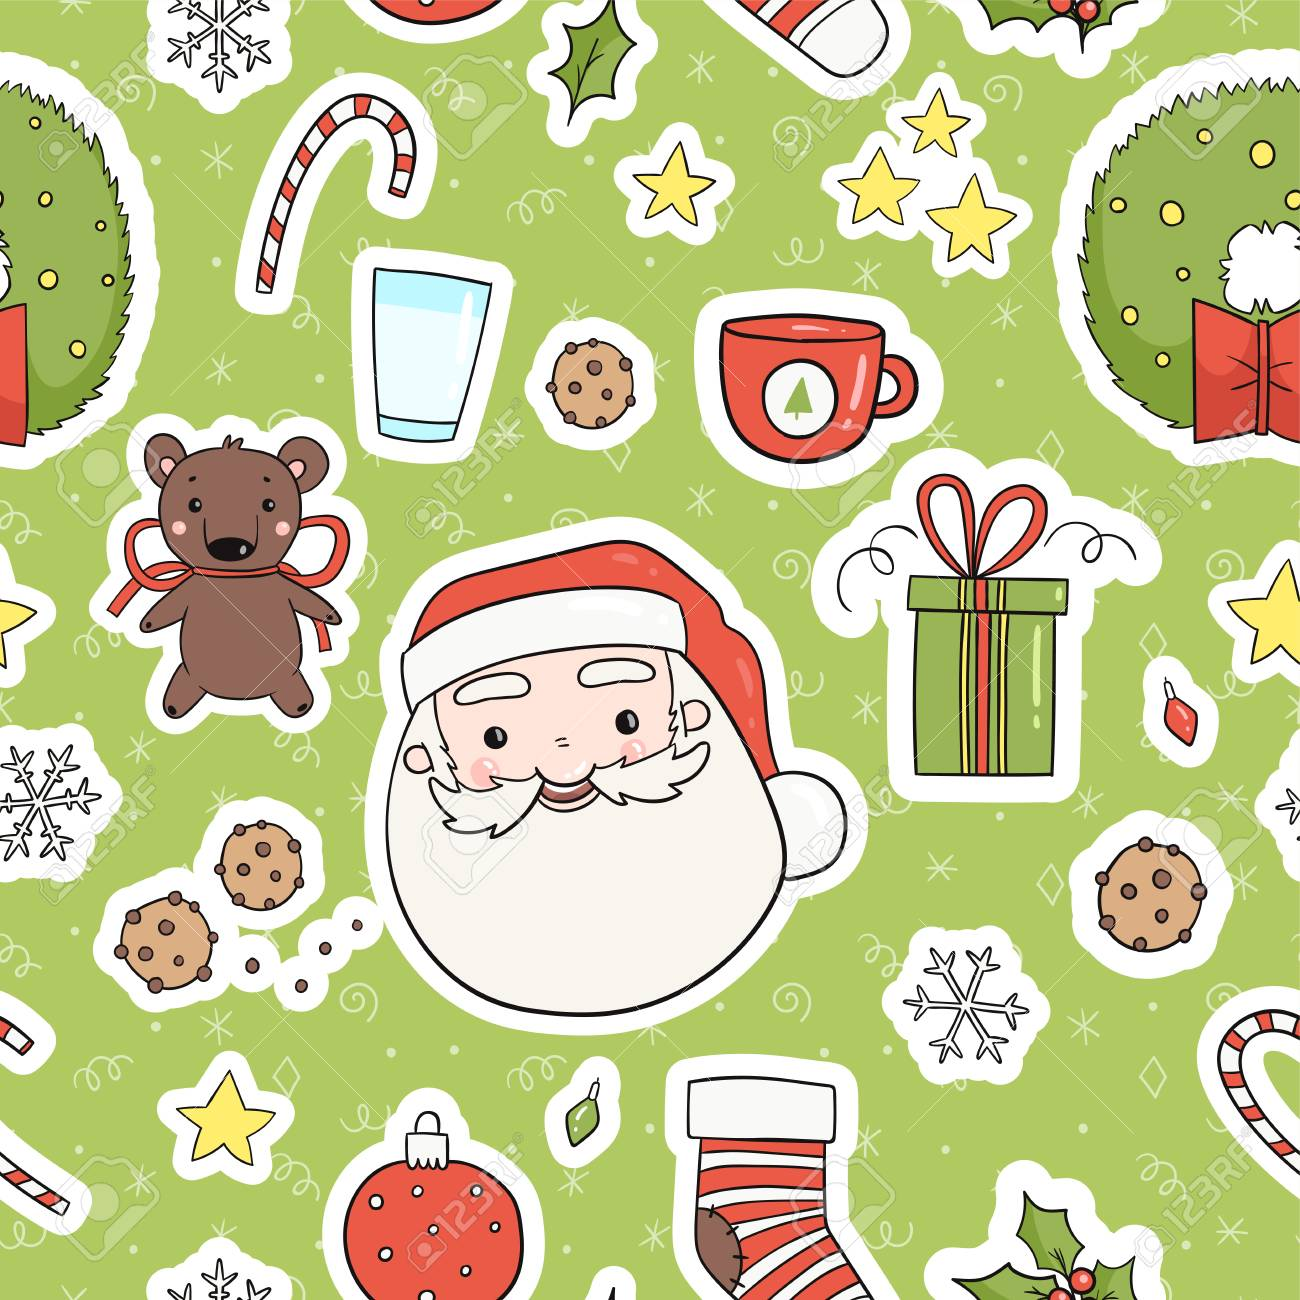 Cute Christmas Party.80s Christmas Party Seamless Pattern Cute Cozy And Bright Winter